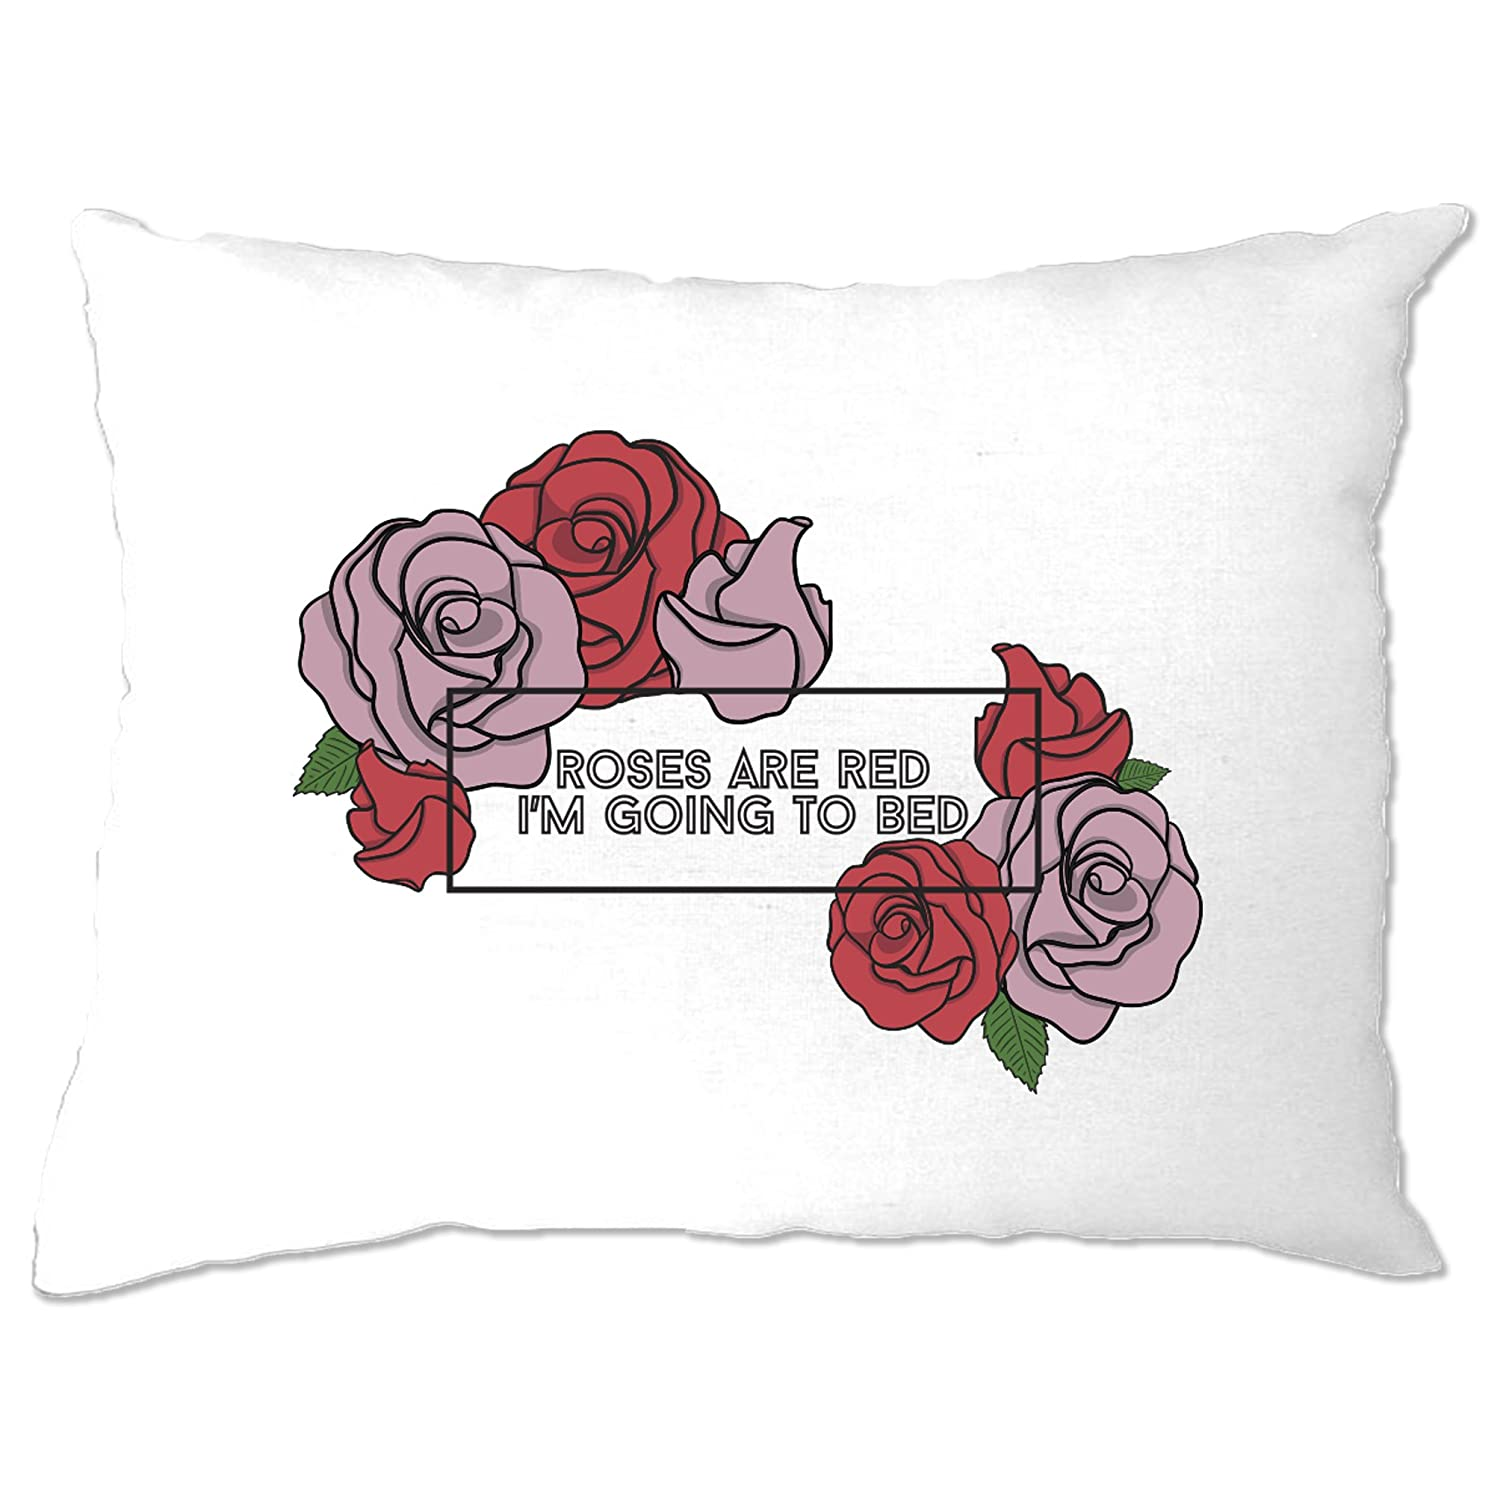 Joke Valentine Pillow Case Roses Are Red I'm Going To Bed White One Size A-PC-01761-WHT